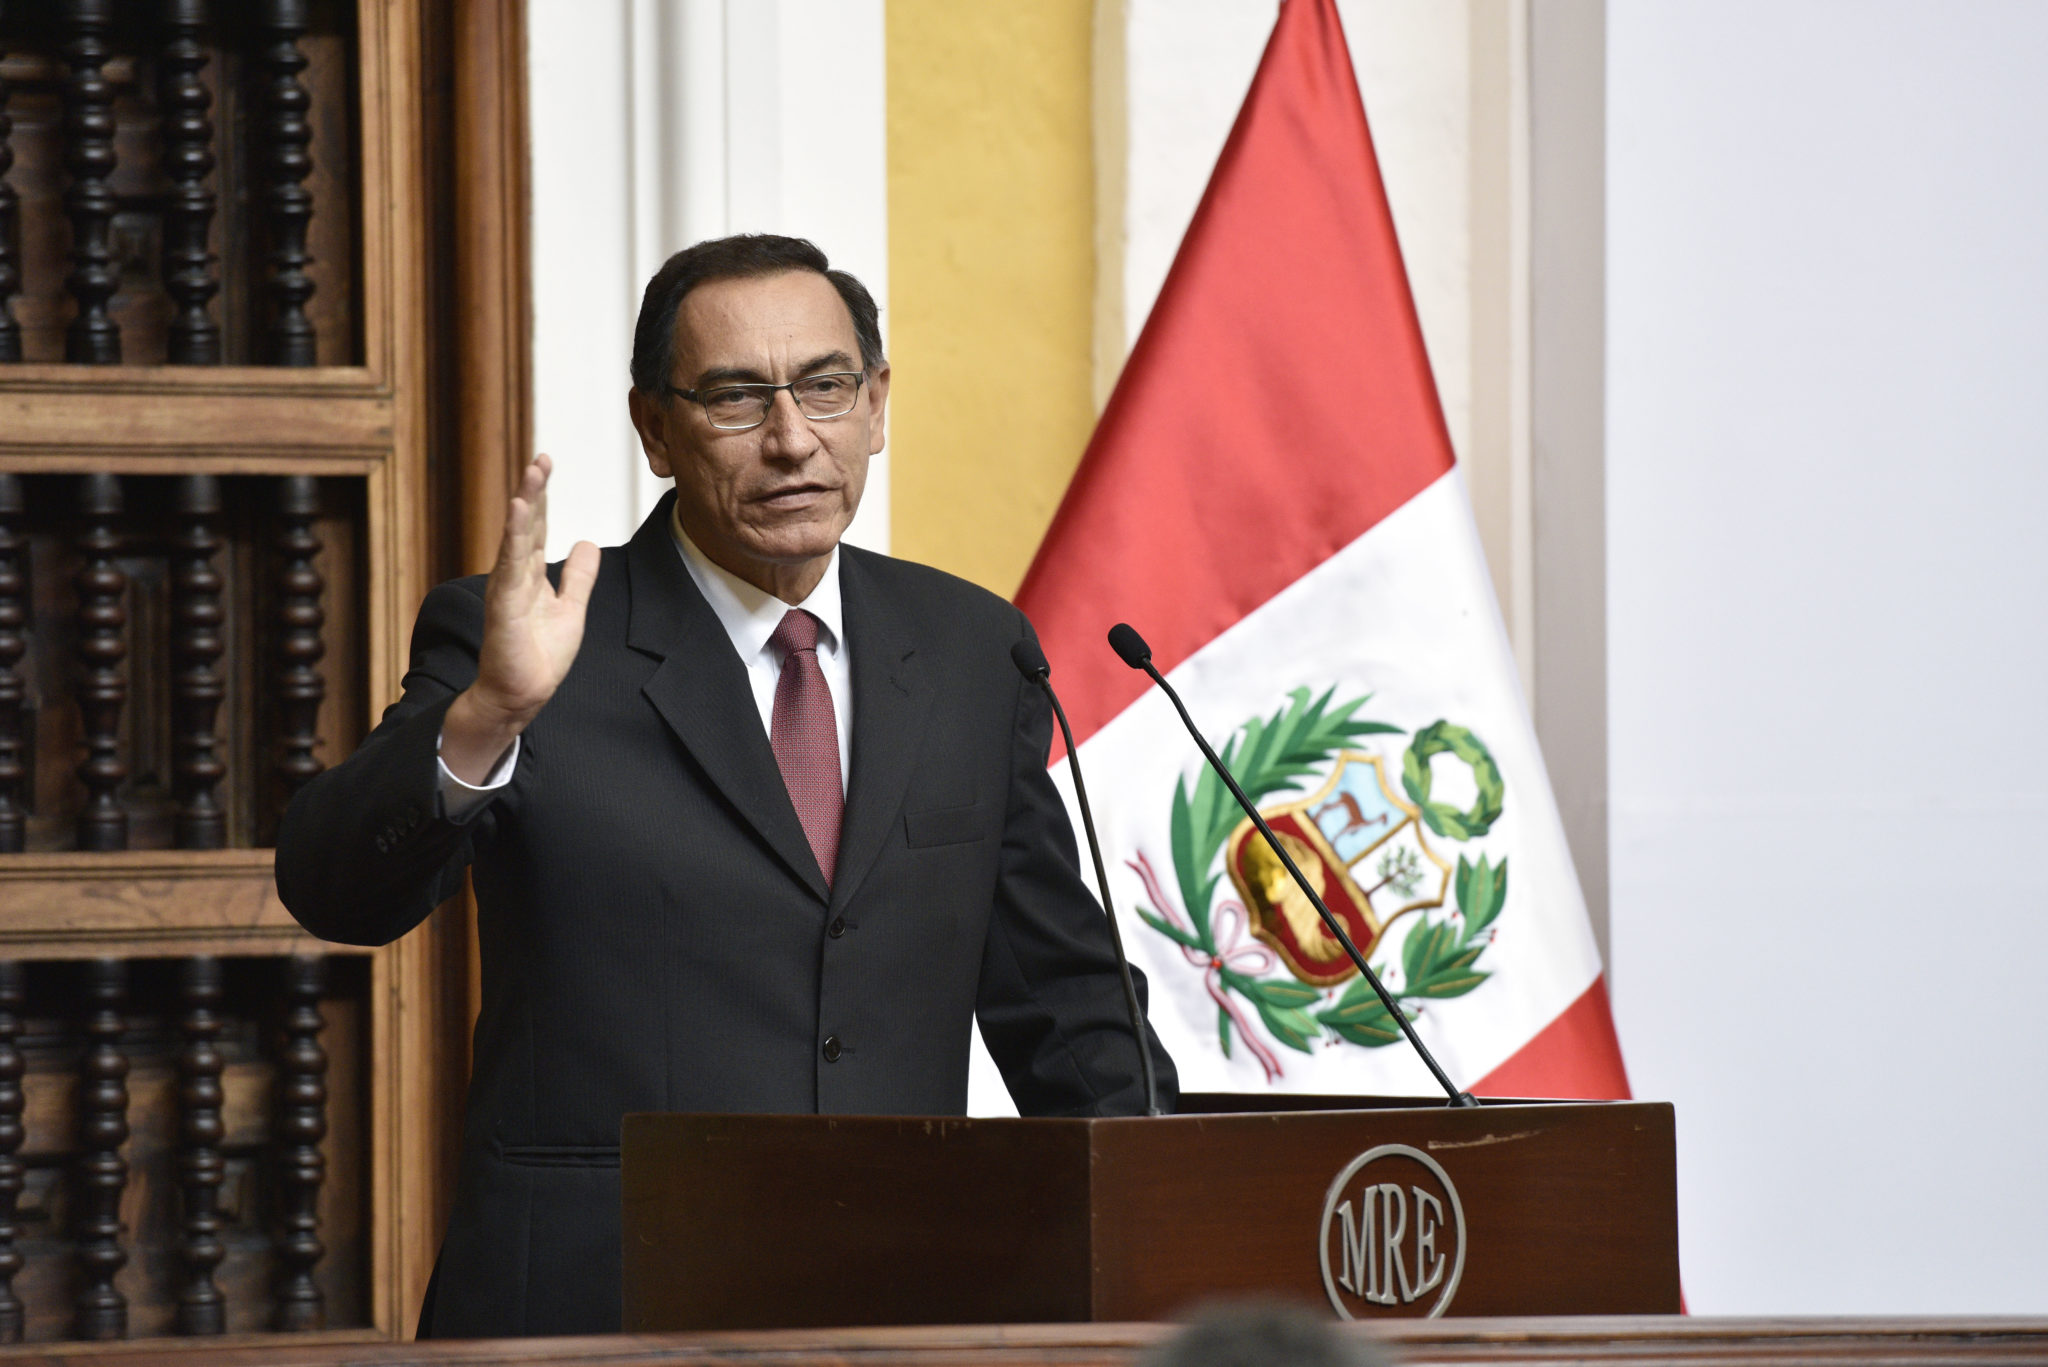 What is Peru's president doing to fight corruption?